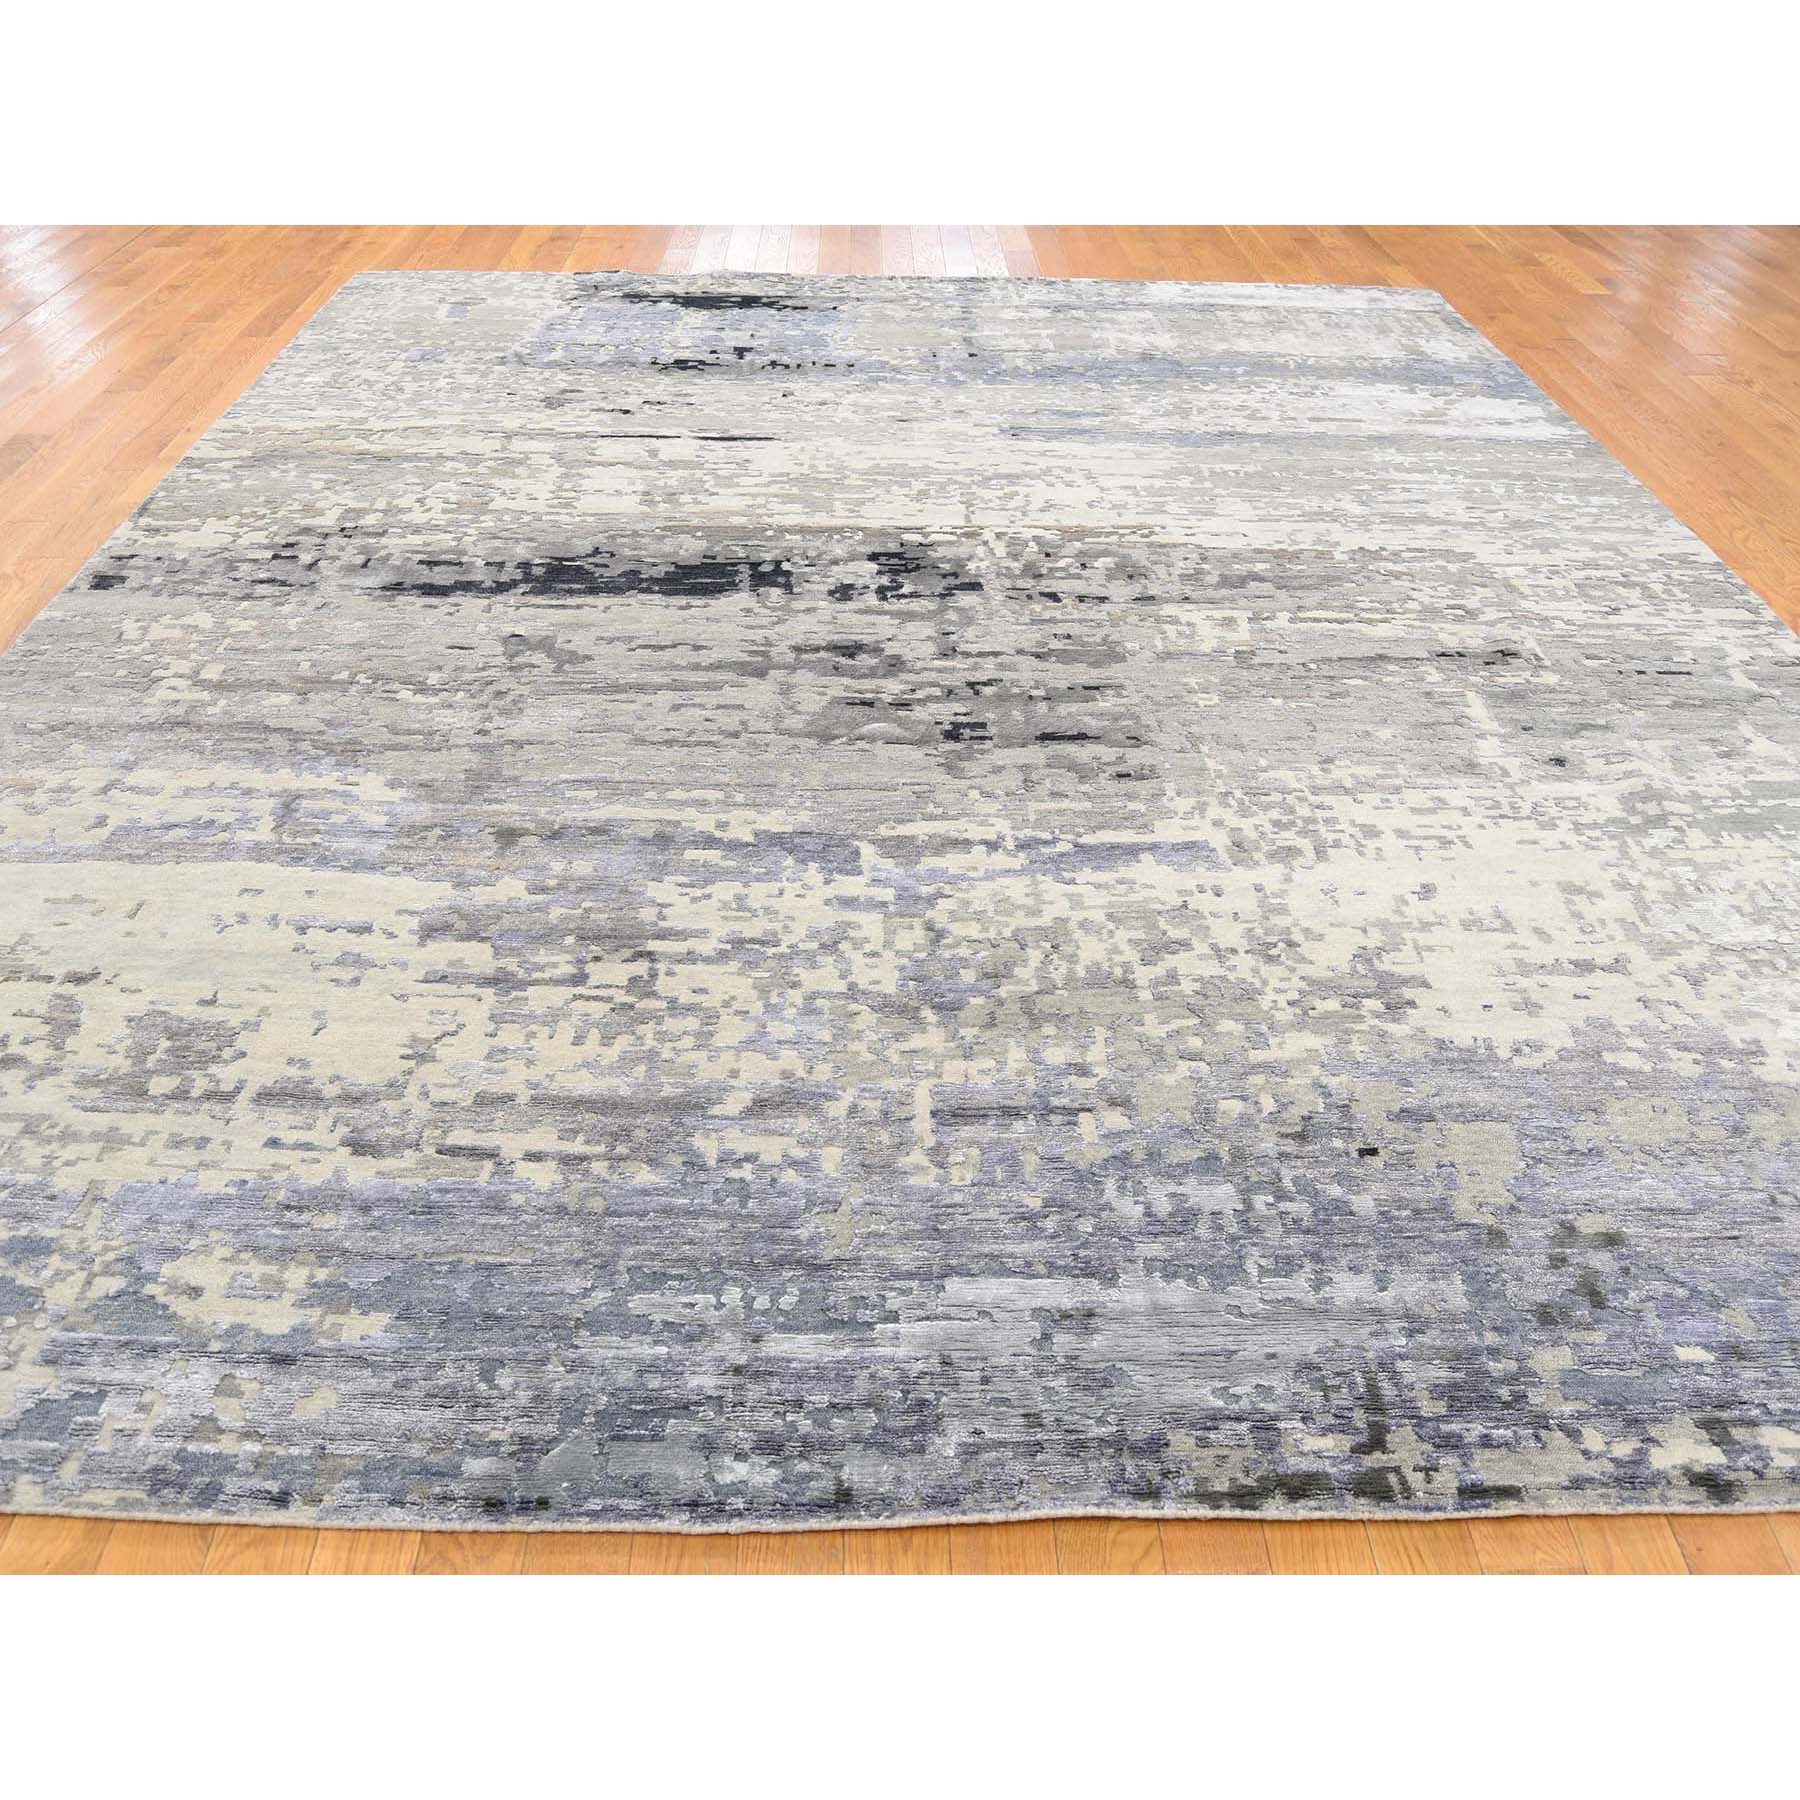 """9'1""""x12"""" Hand-Knotted Wool and Silk Hi-Lo Pile Abstract Design Oriental Rug"""